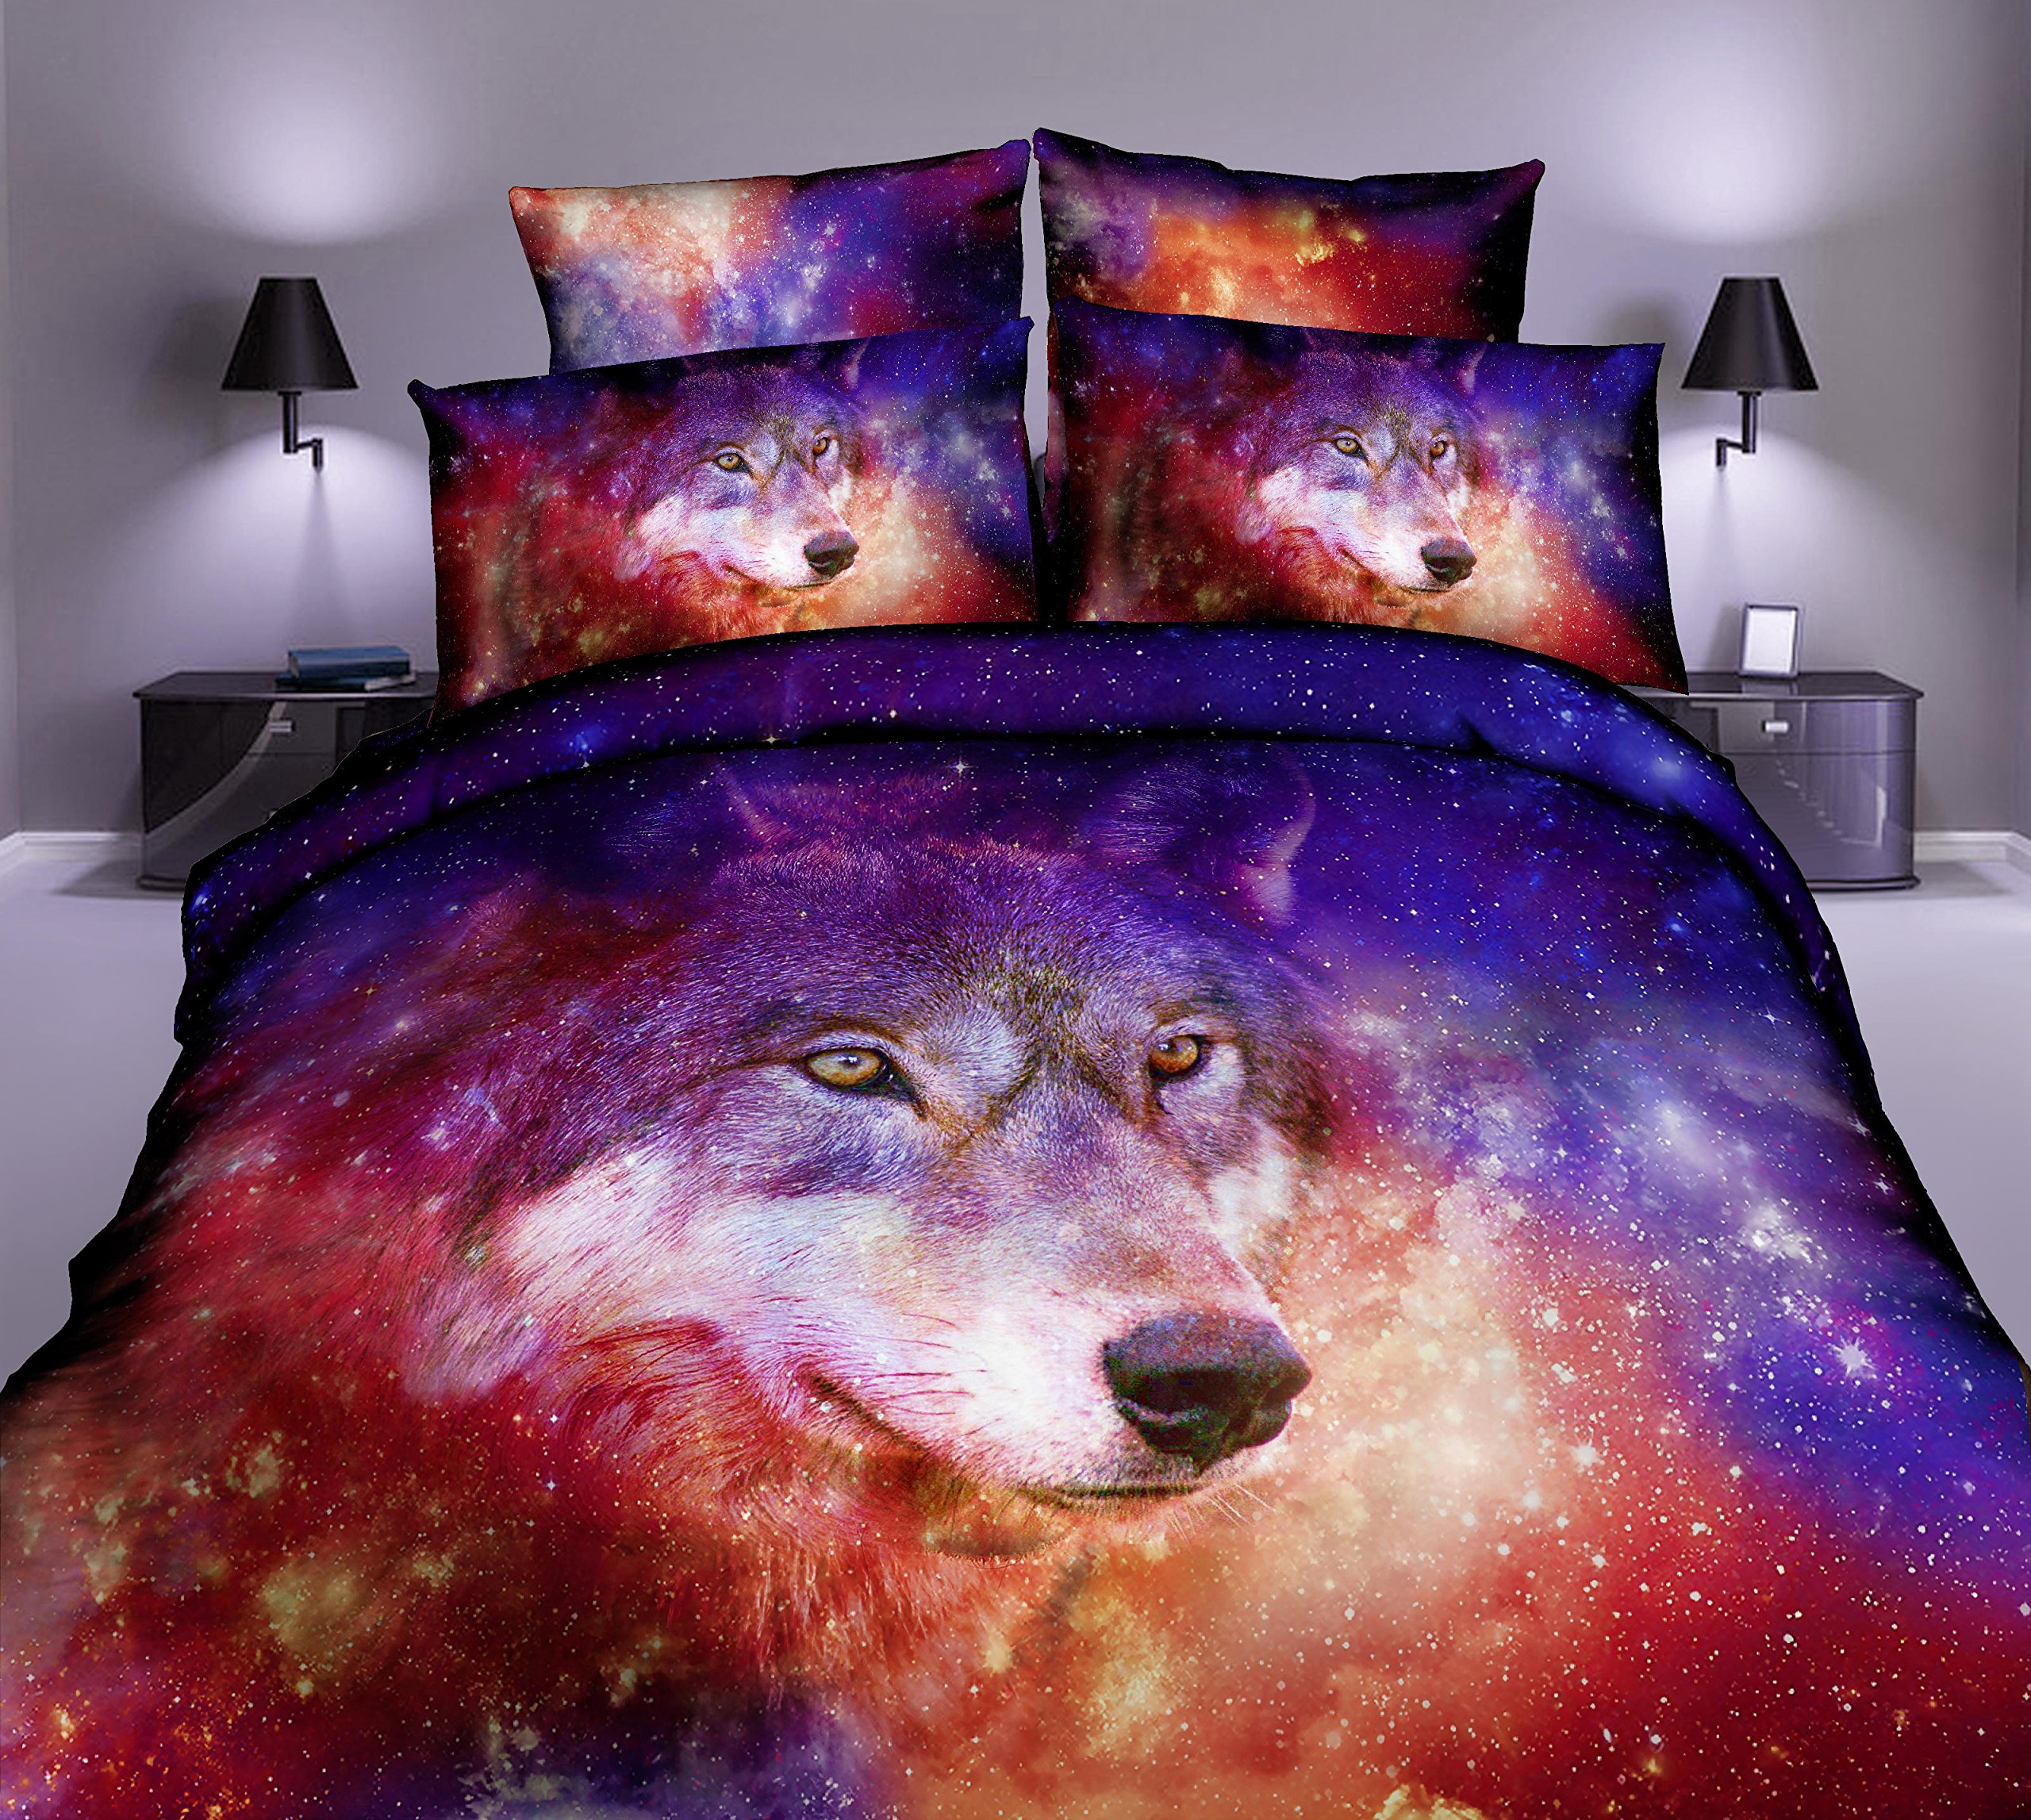 Cliab Wolf Bedding Sets Queen for Girls Boys Bed Sheets Duvet Cover Set 7 Pieces(Fitted Sheet Included)